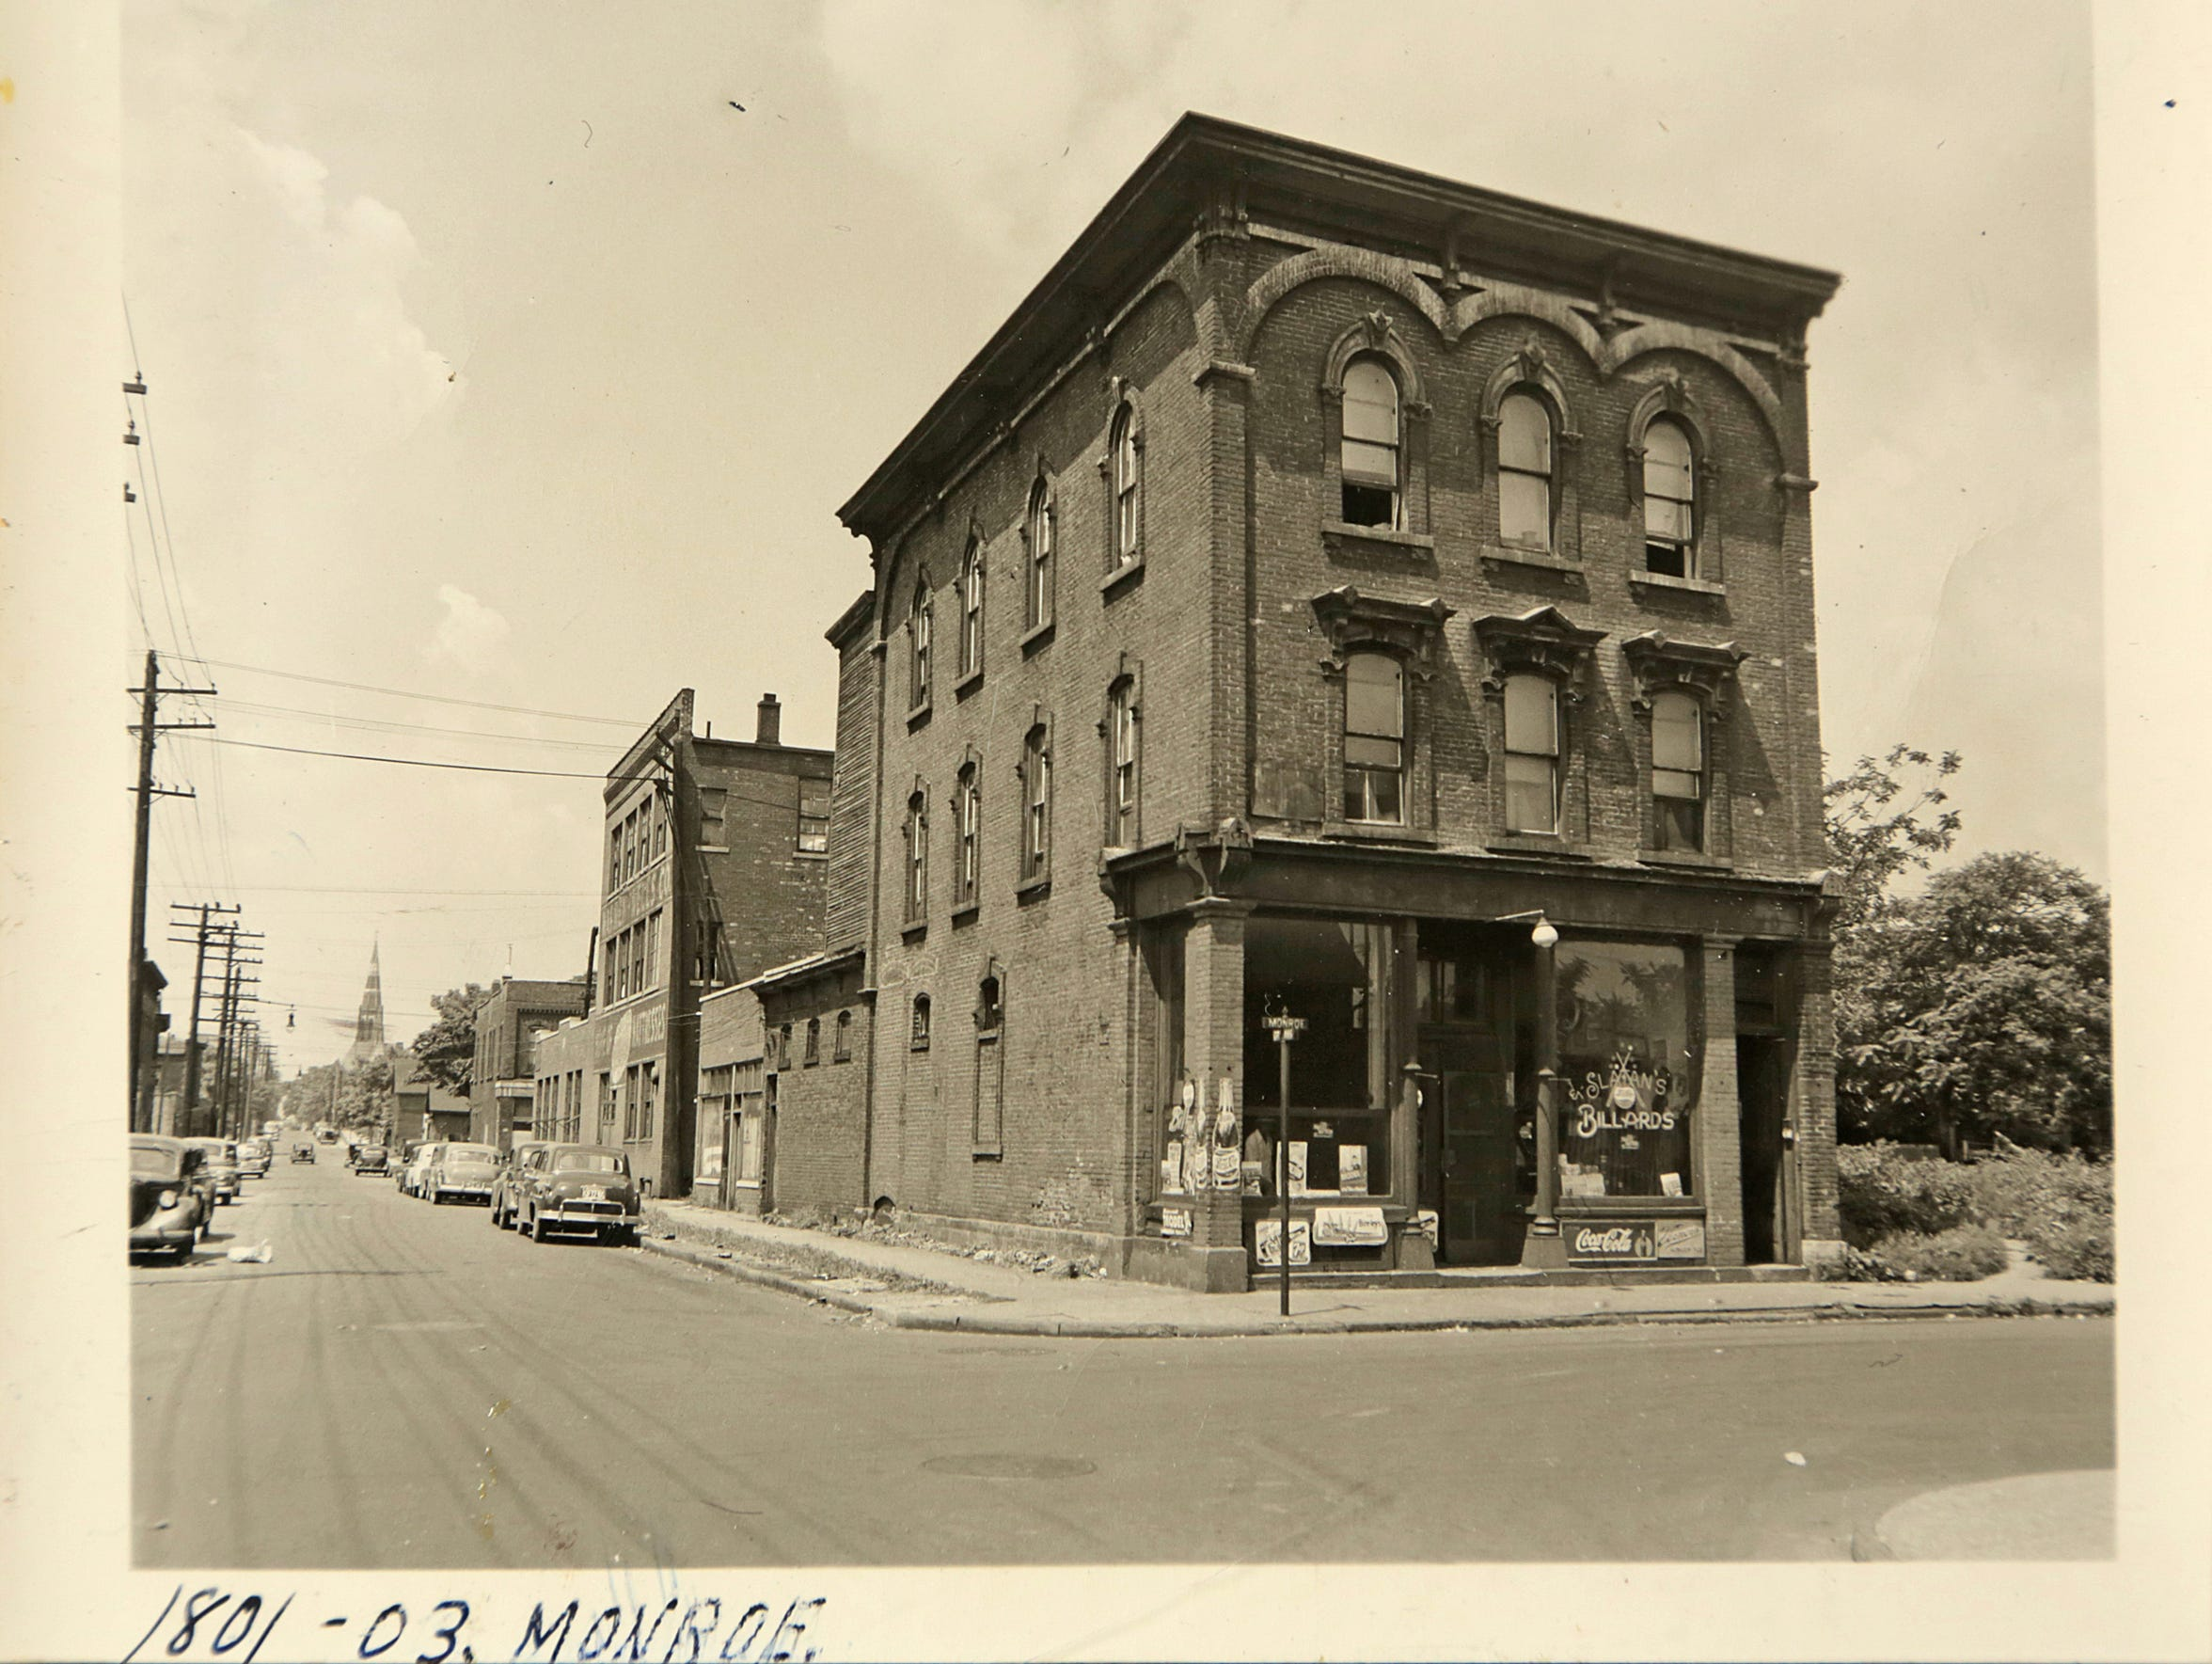 This is a historical photo of Black Bottom before it